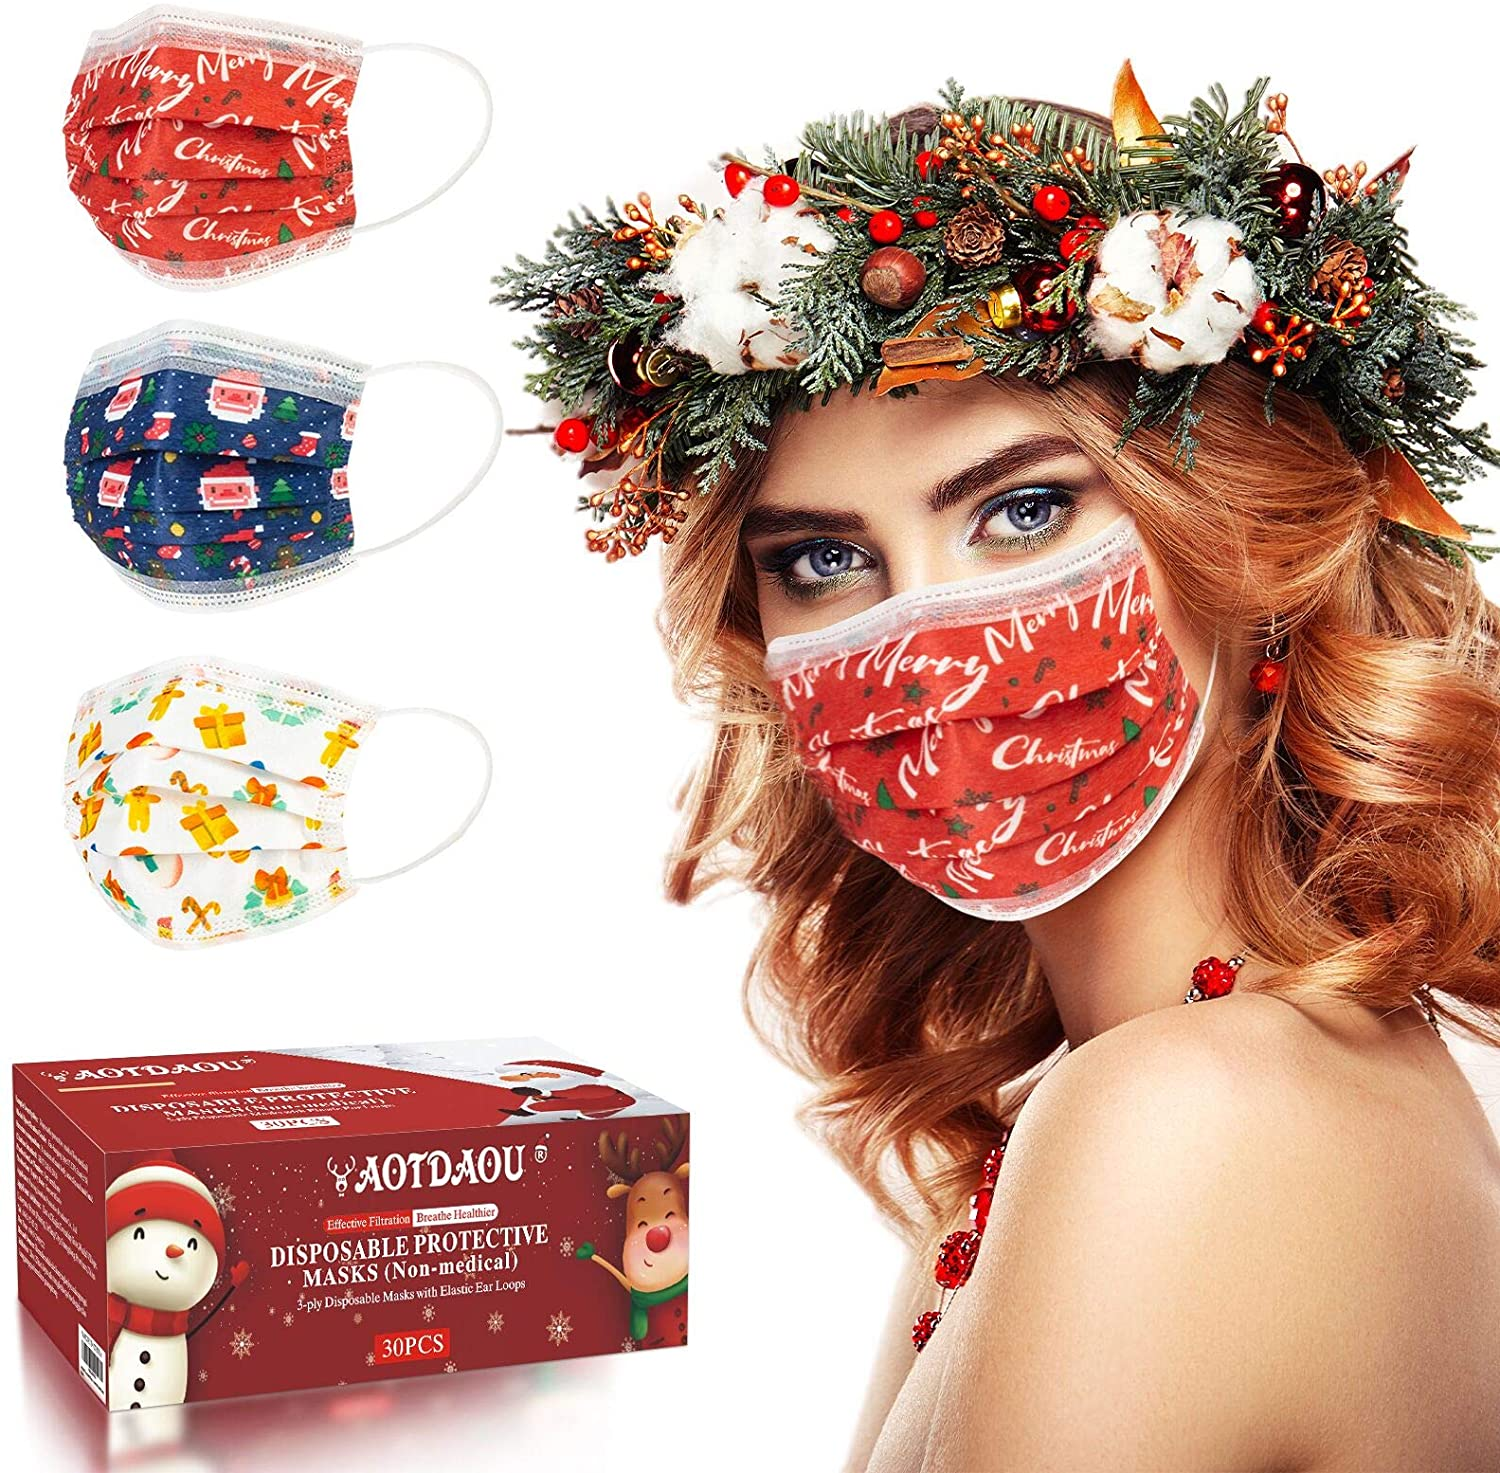 AOTDAOU Face Mask for Women, Christmas Face Mask Disposable, Holiday Face Mask with Breathable 3 Layer Protection - Anti Dust Mask Adult Size with Santa Pattern Designed 30PCS